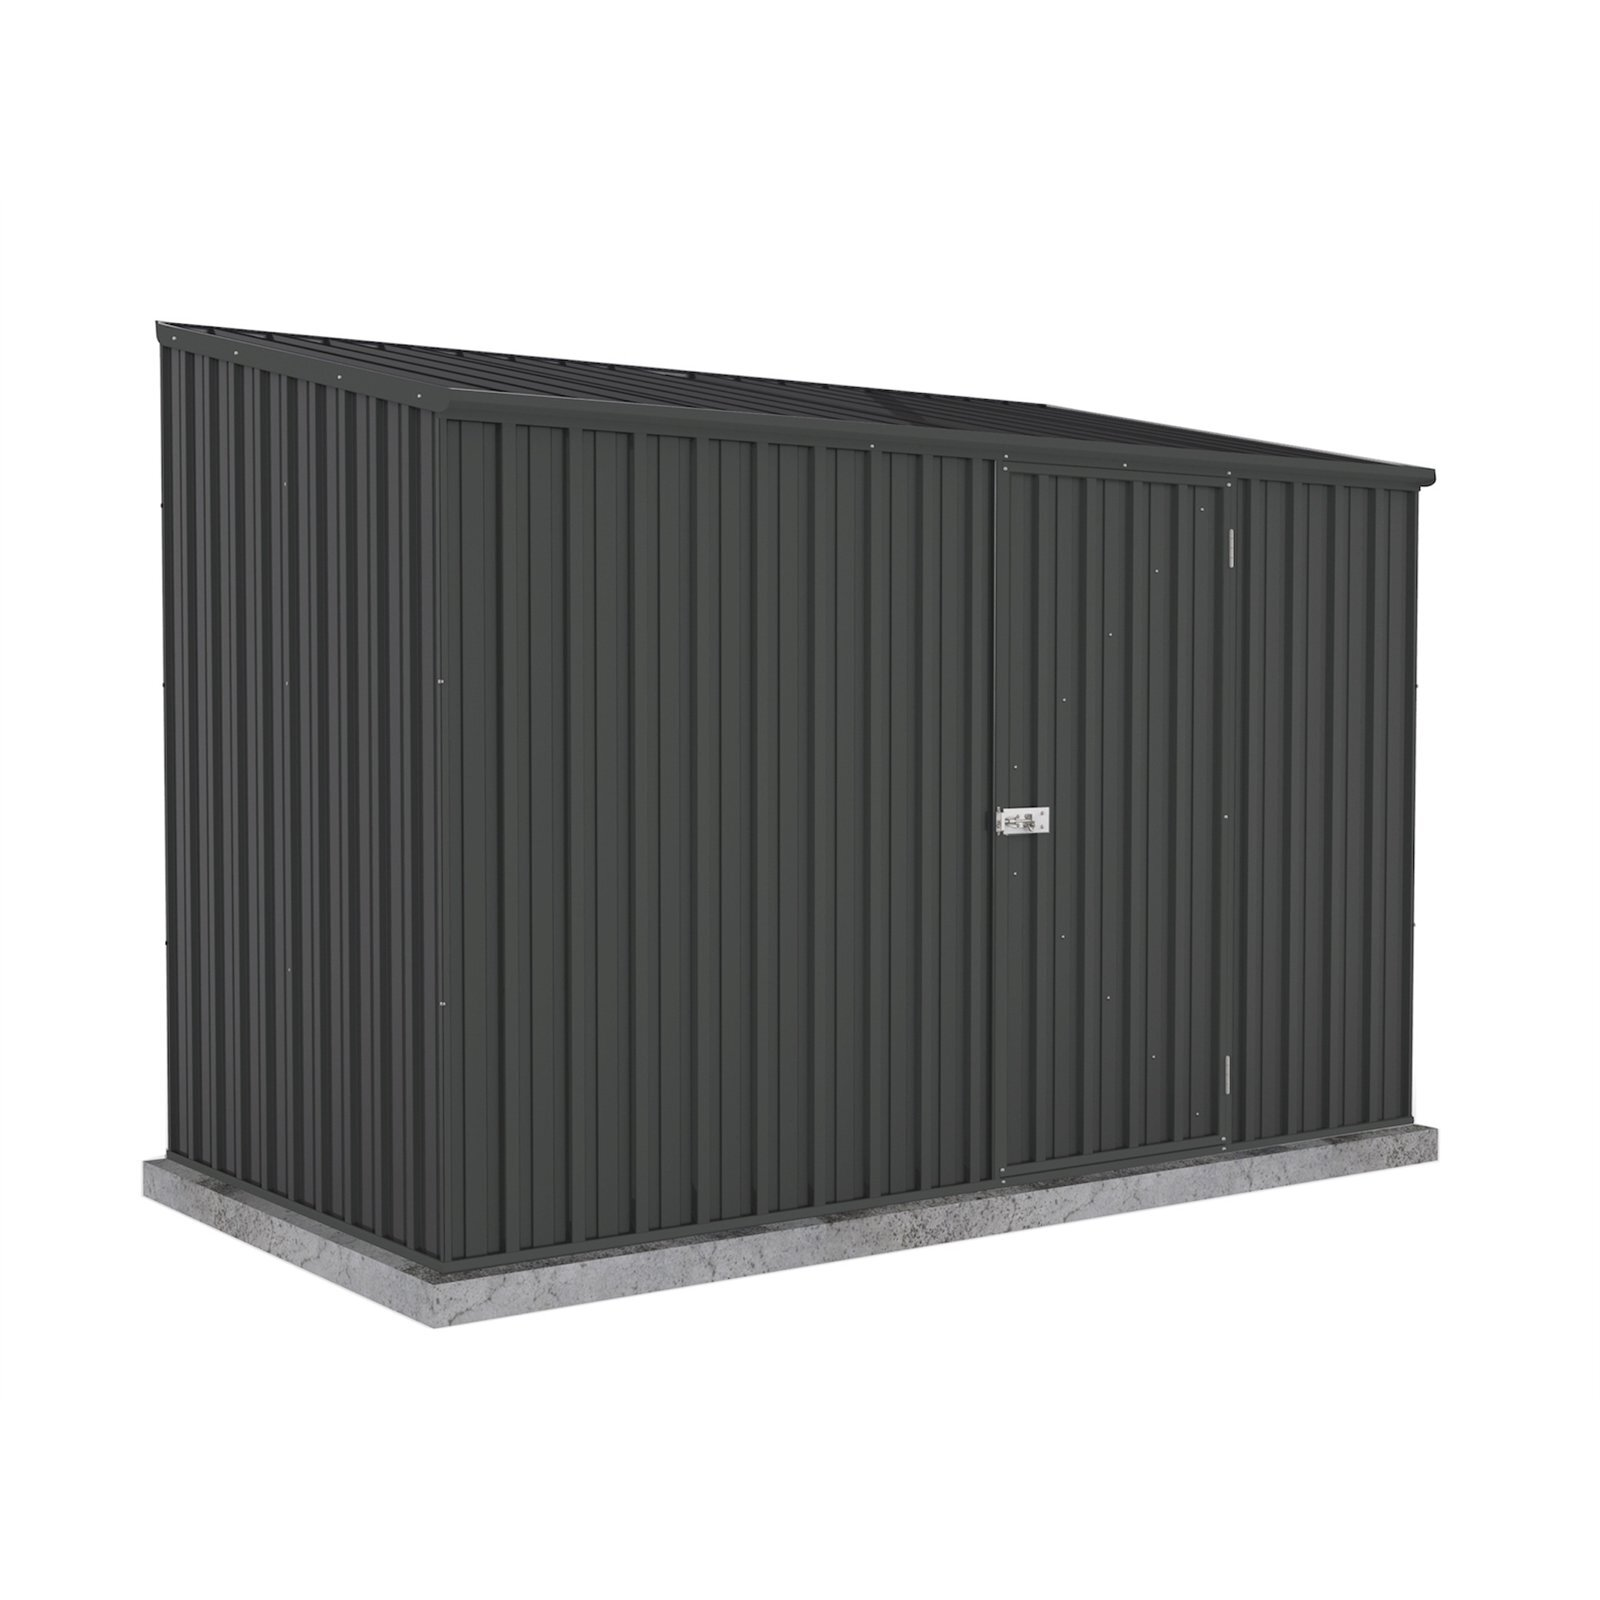 Absco Sheds 3 x 1.52 x 2.08m Space Saver Single Door Garden Shed - Monument